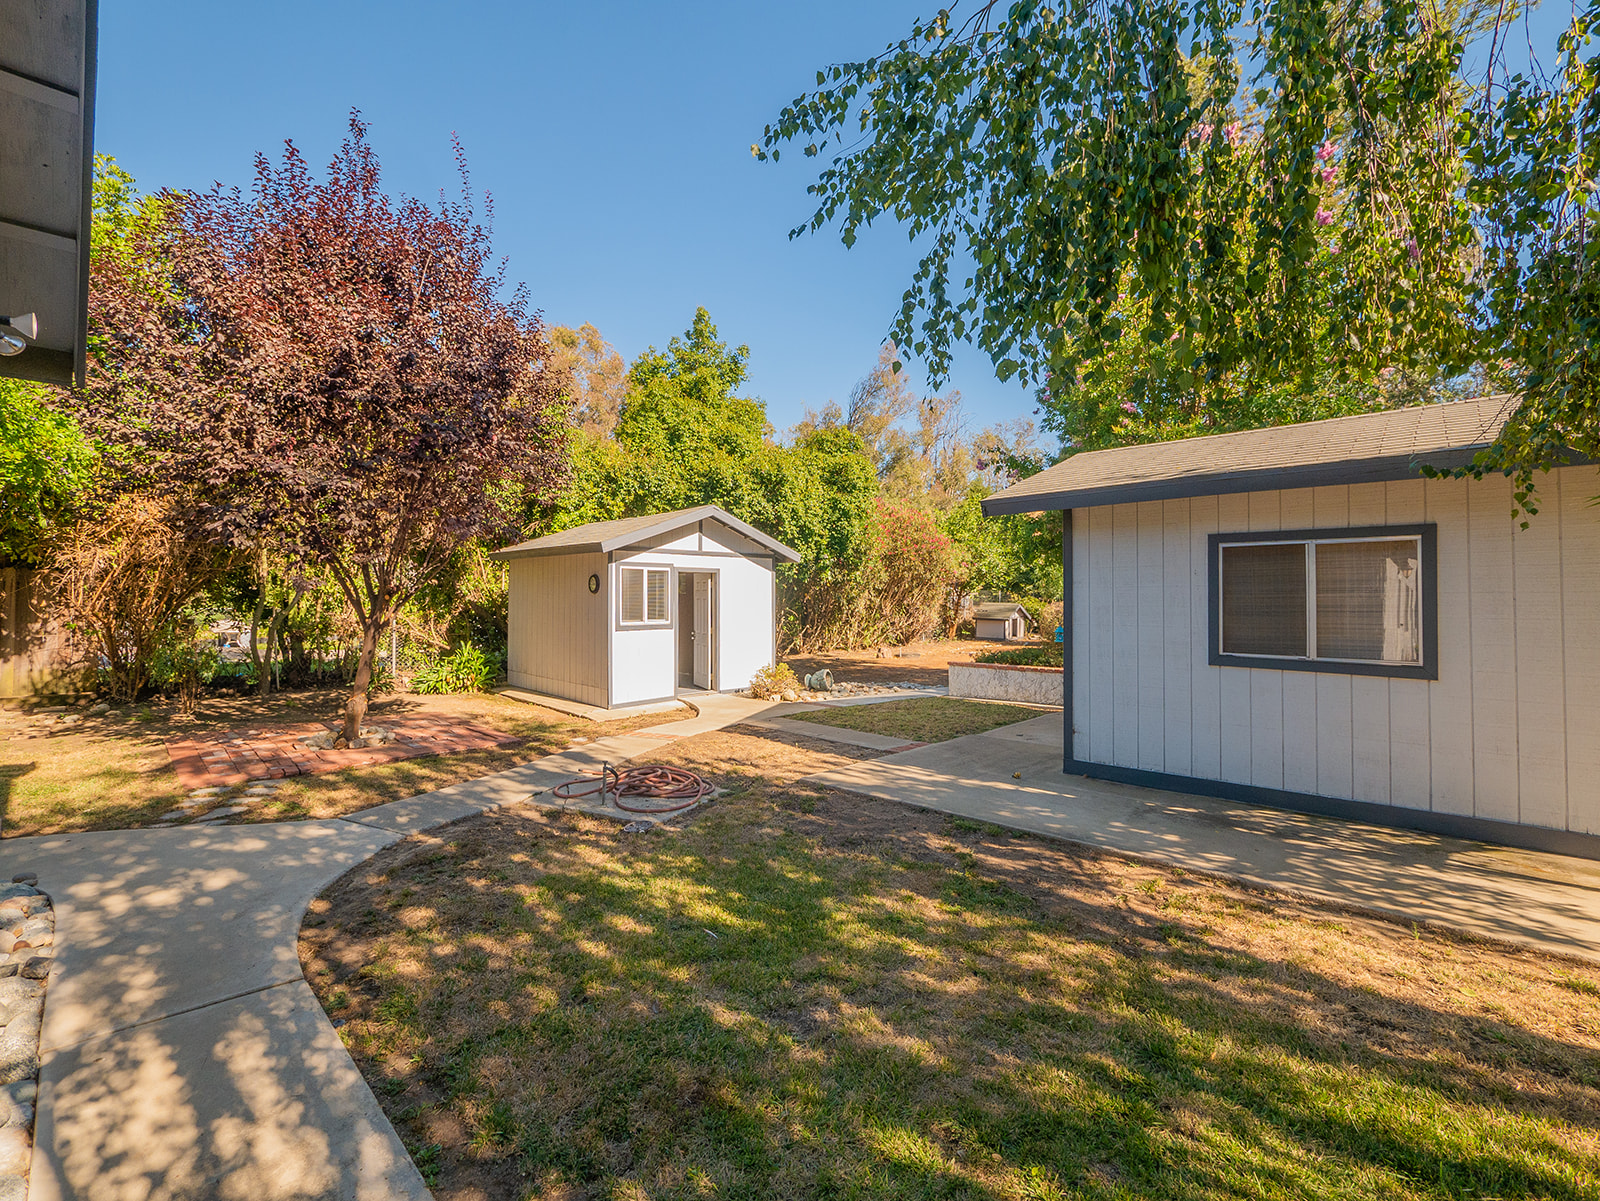 3903 Bayberry Dr 39